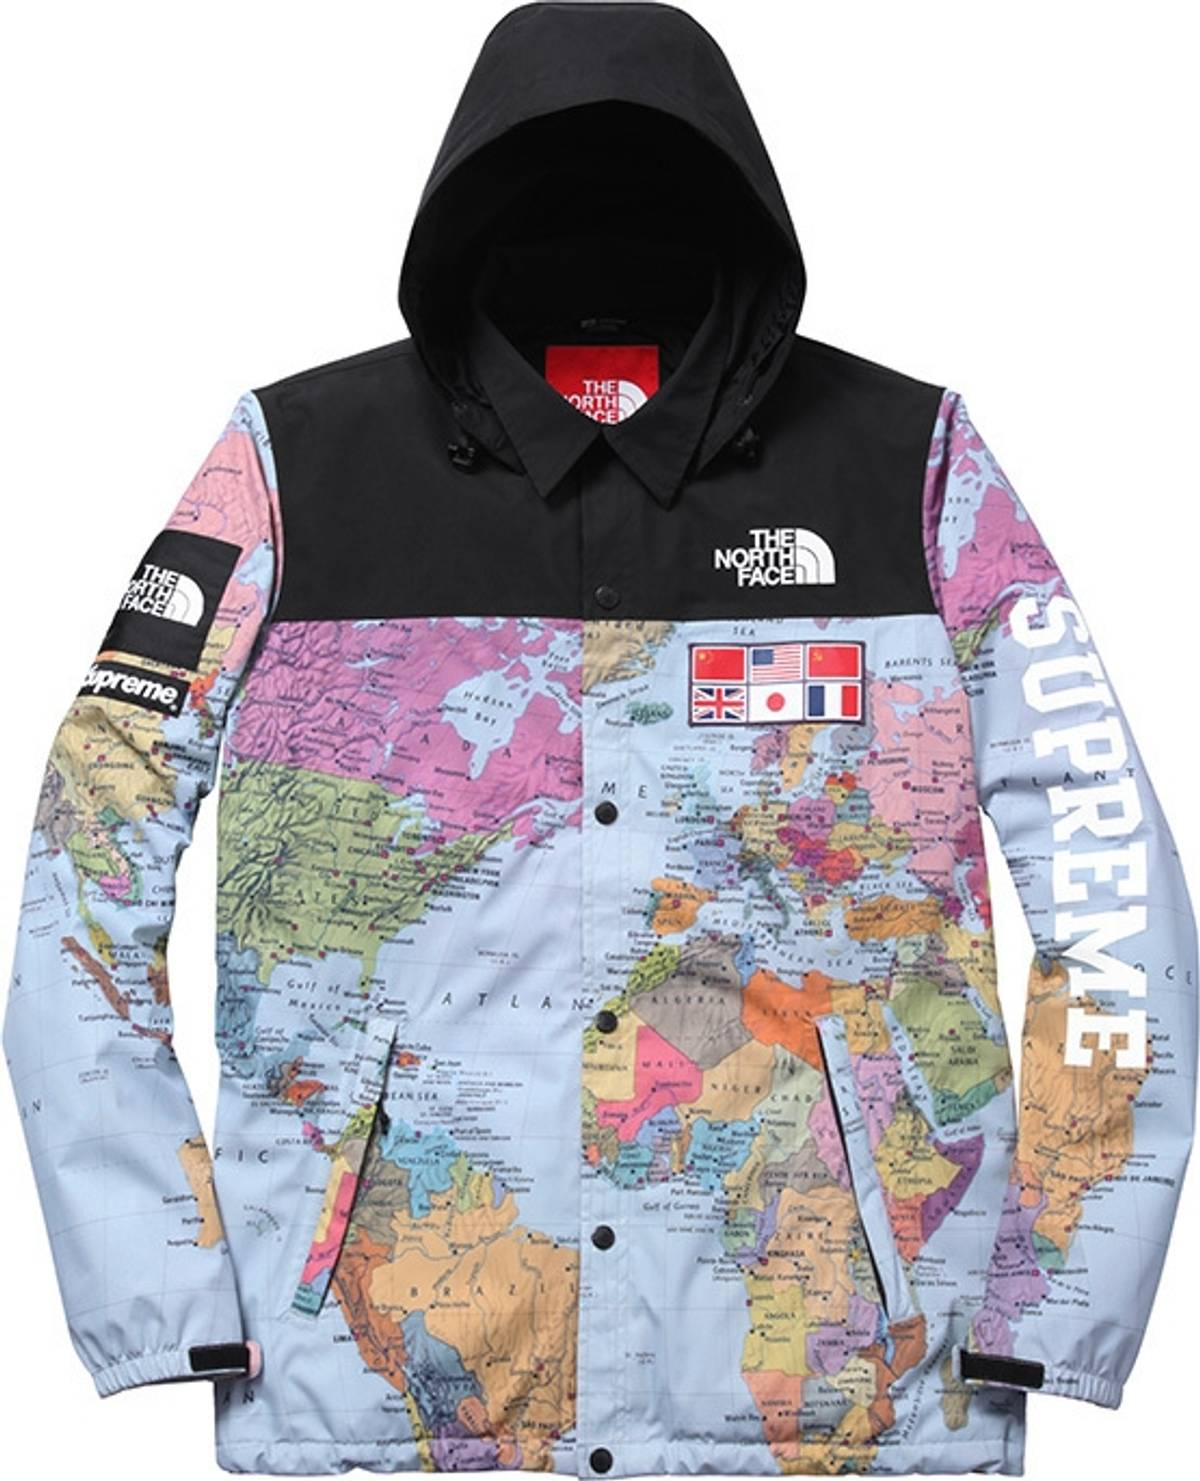 Supreme Supreme X The North Face Worldwide Map Jacket | Grailed